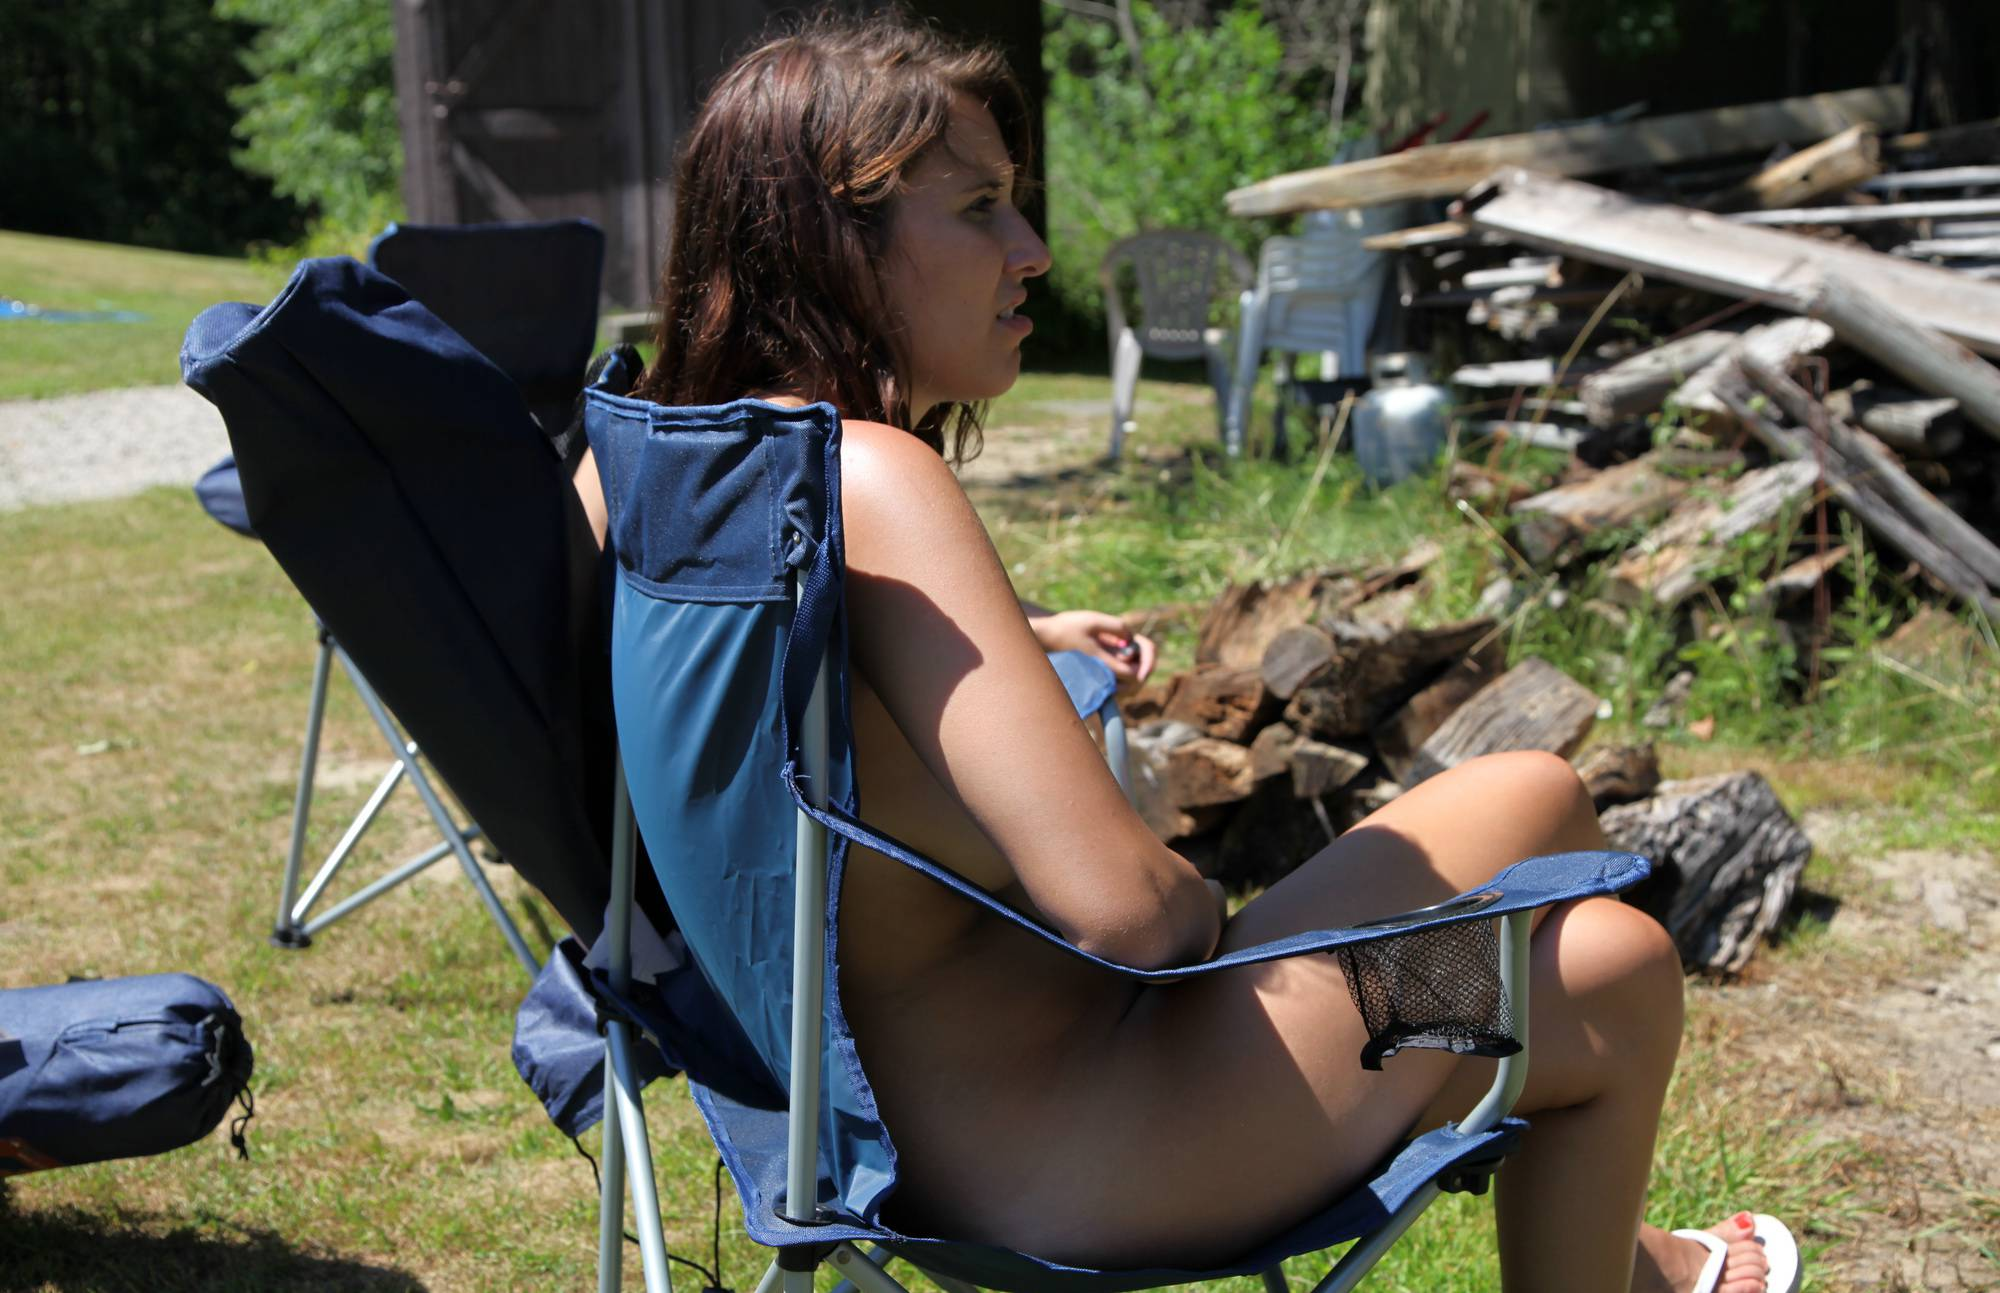 Nudist Photos Barbecue Grilling Time - 1